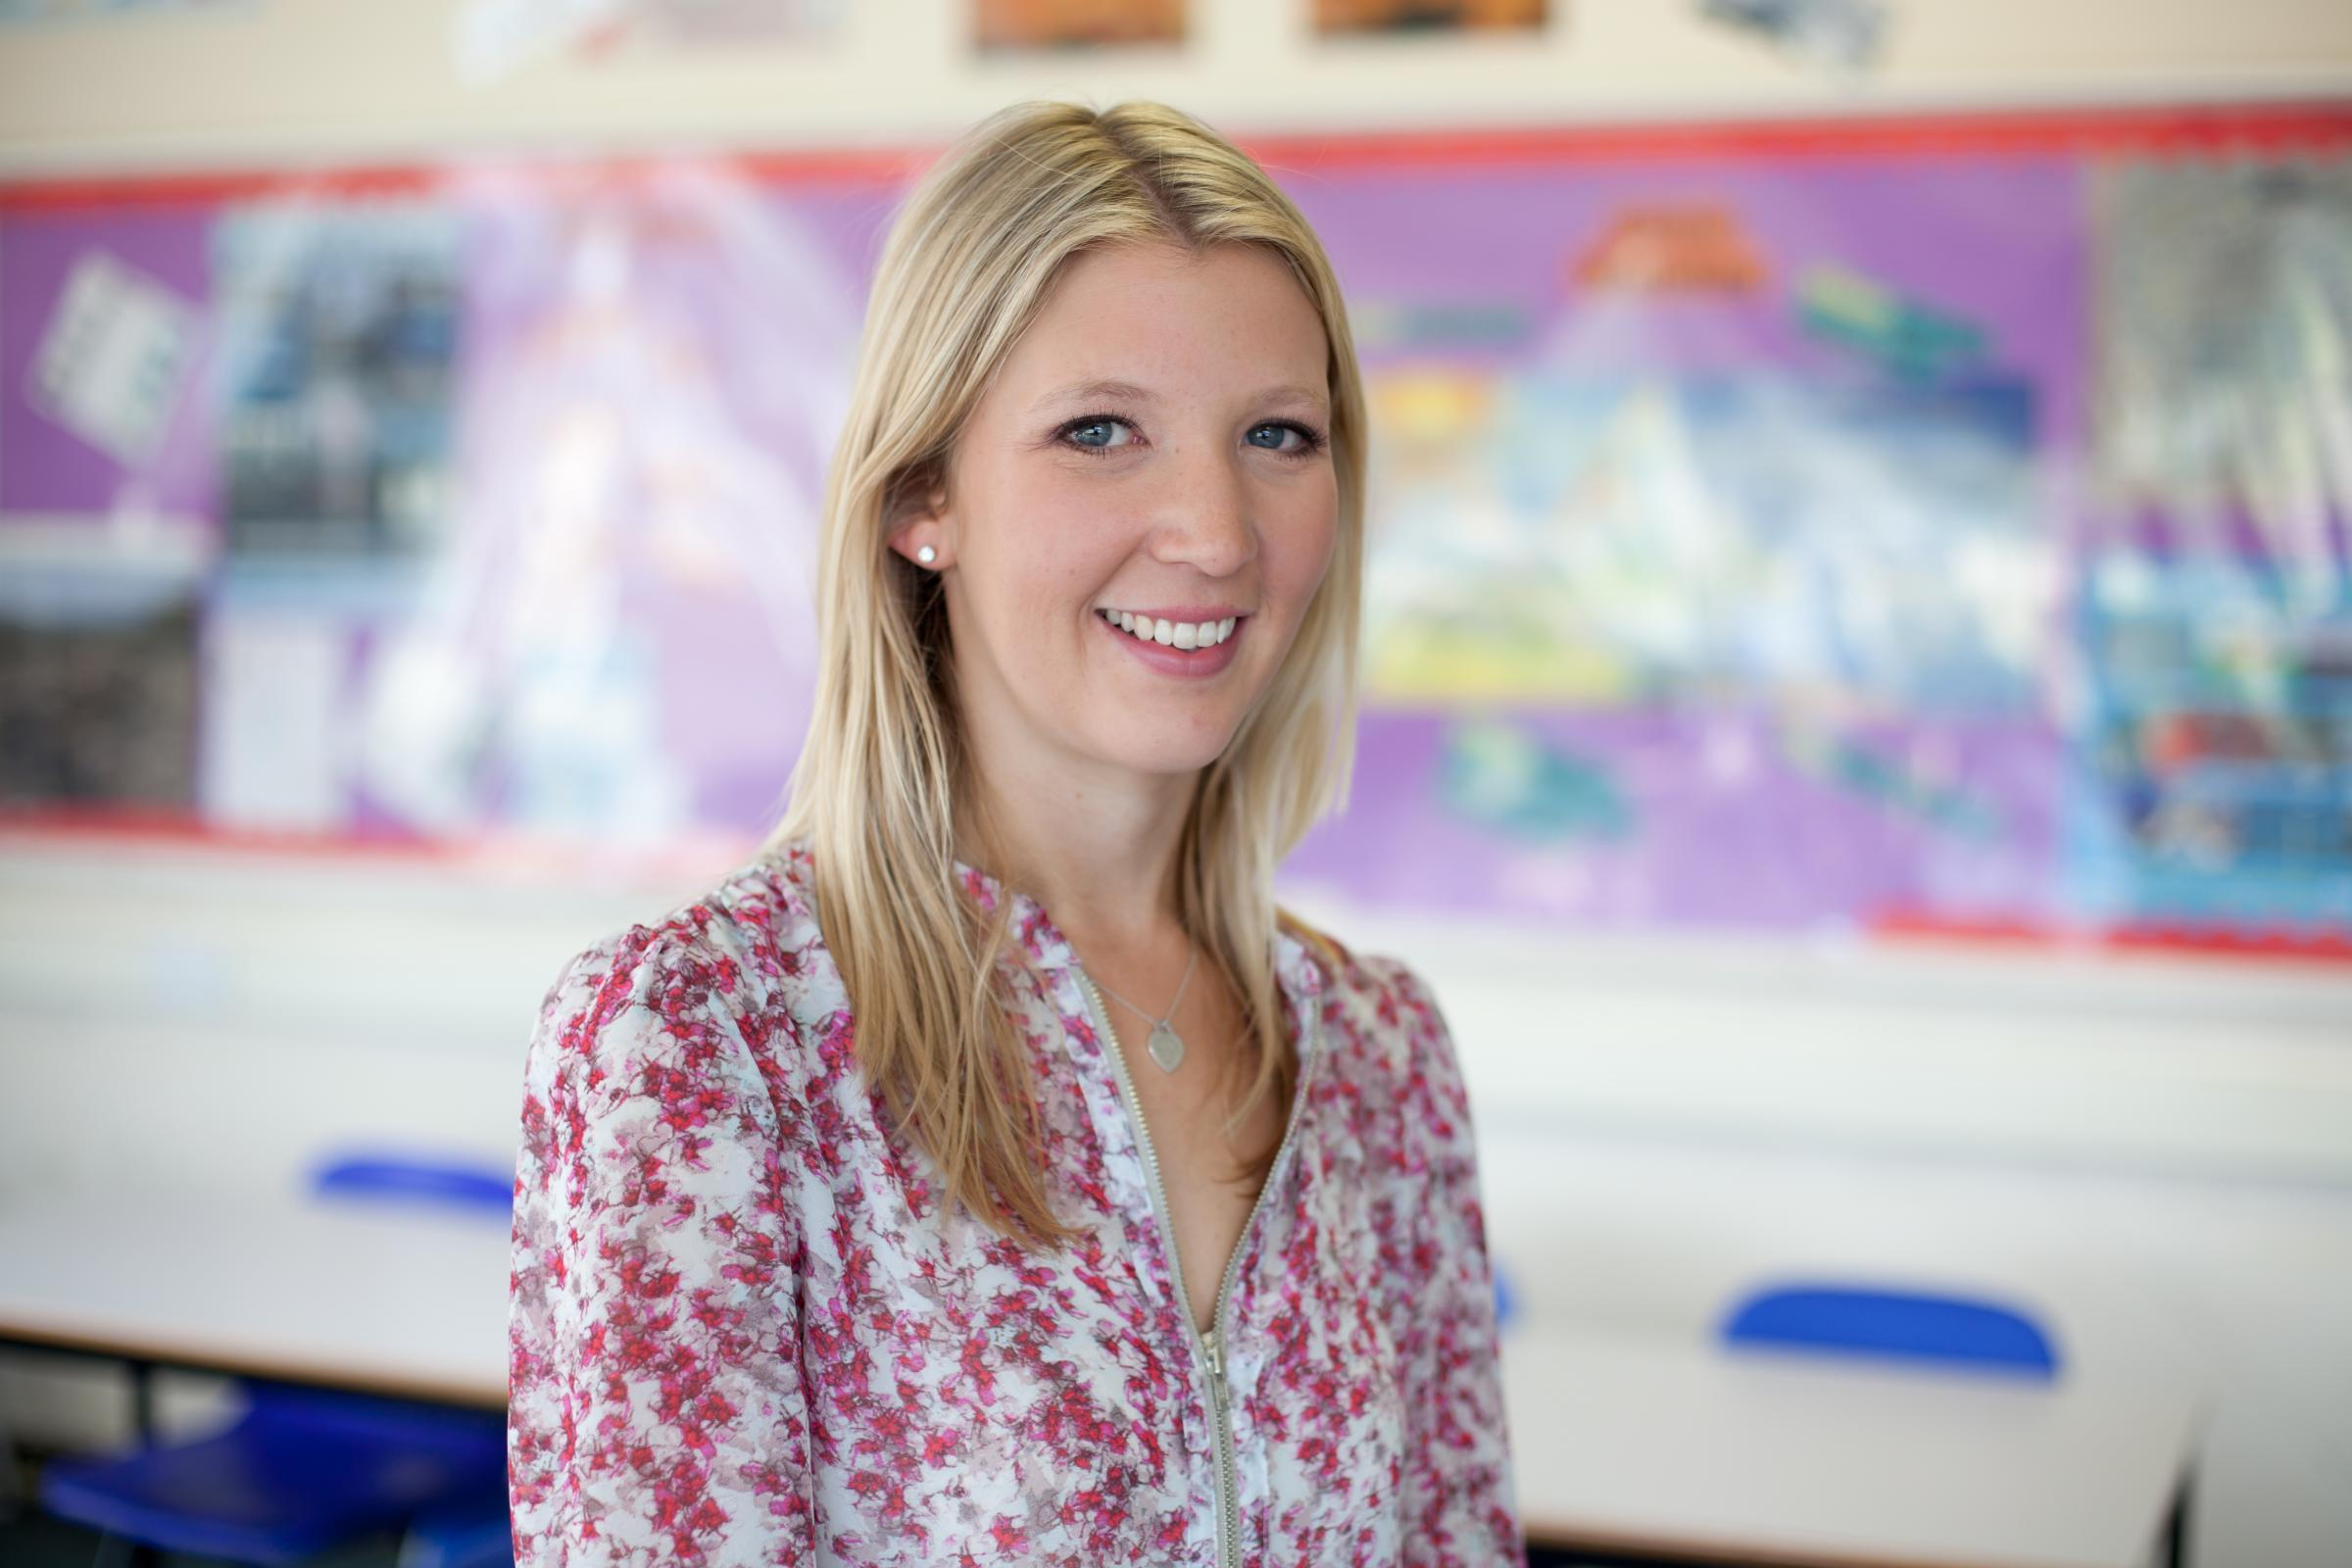 Teacher from Hove finds fame in BBC teacher documentary Tough Young Teachers